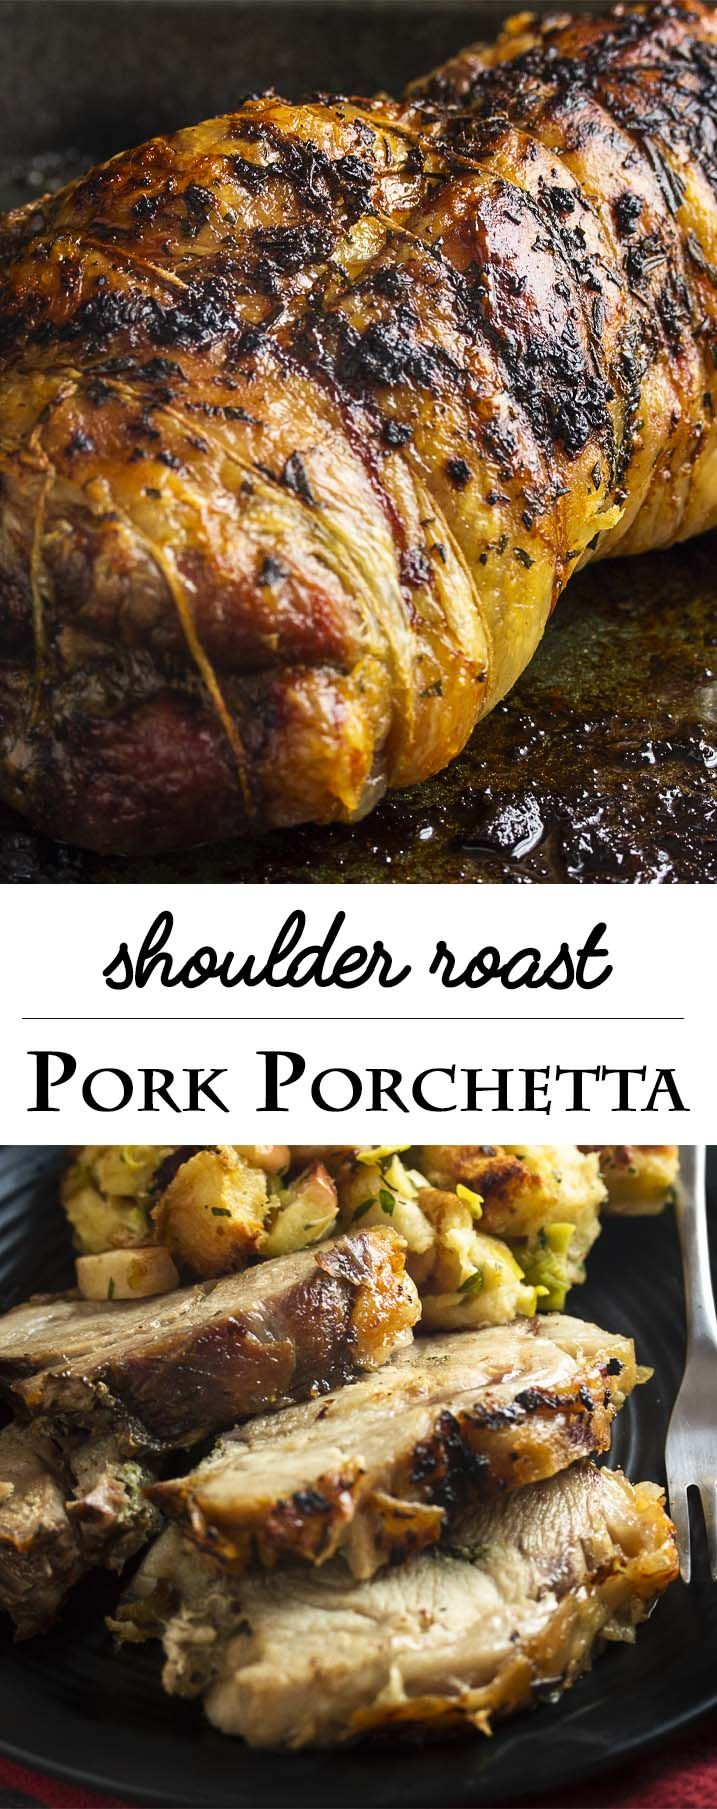 Boneless pork shoulder rubbed with herbs and garlic, then rolled and roasted makes a simple, rich, and intensely flavored pork porchetta. | justalittlebitofbacon.com